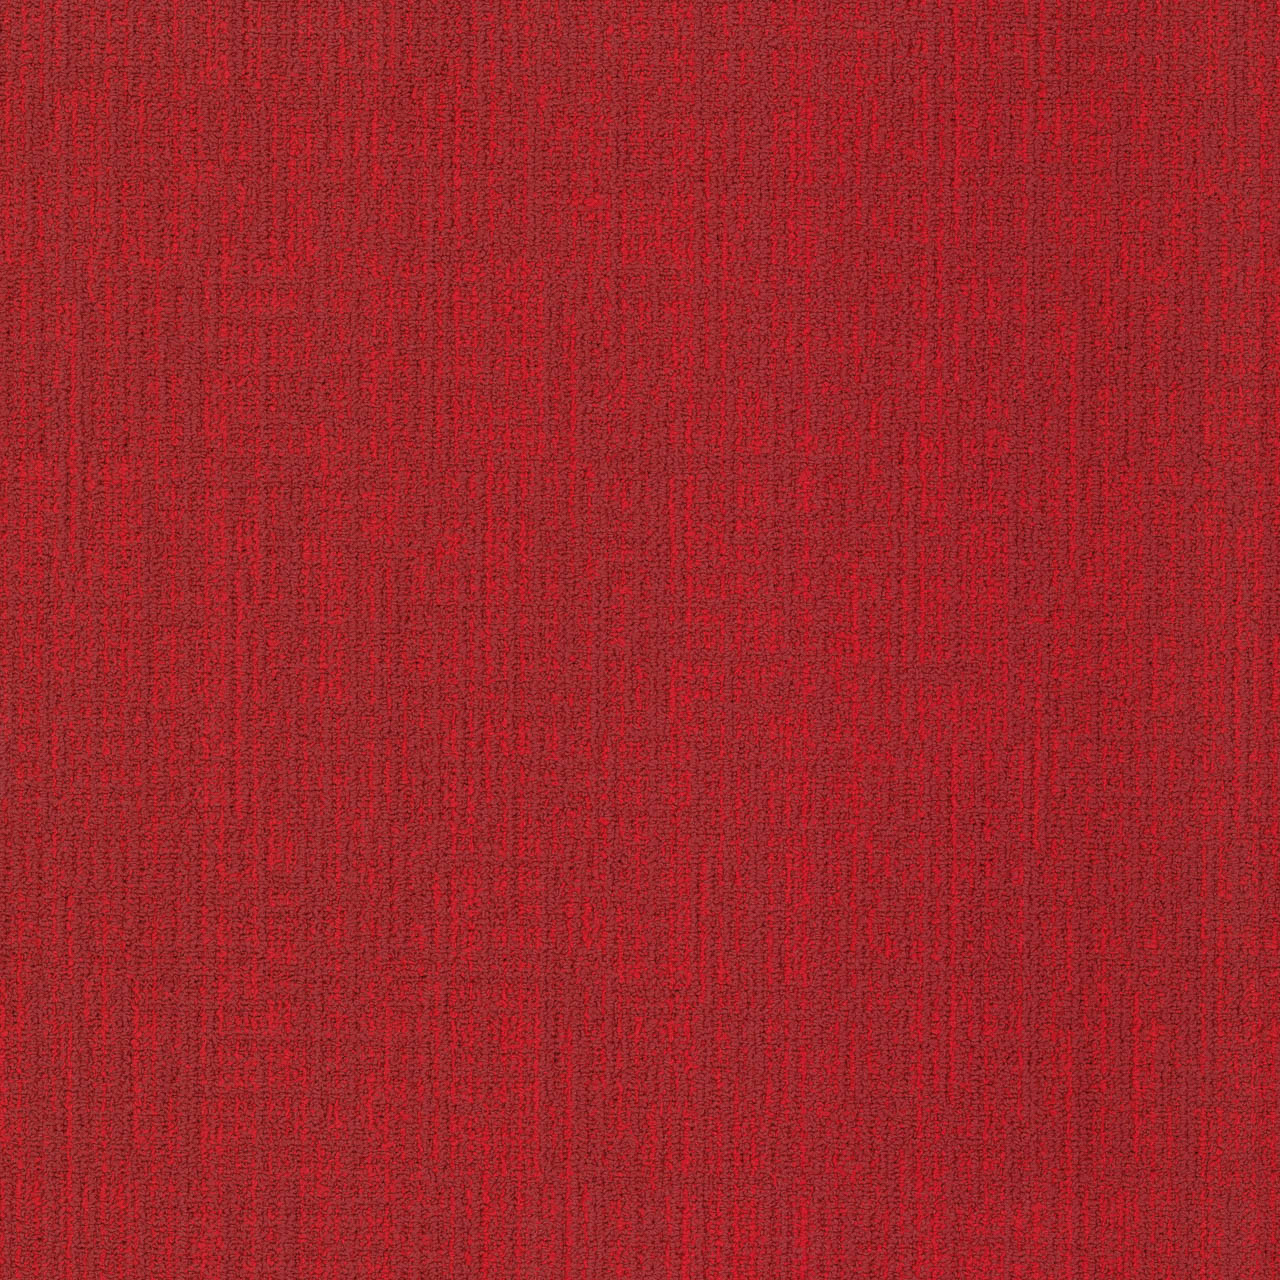 Amtico International: Colour Anchor Poppy